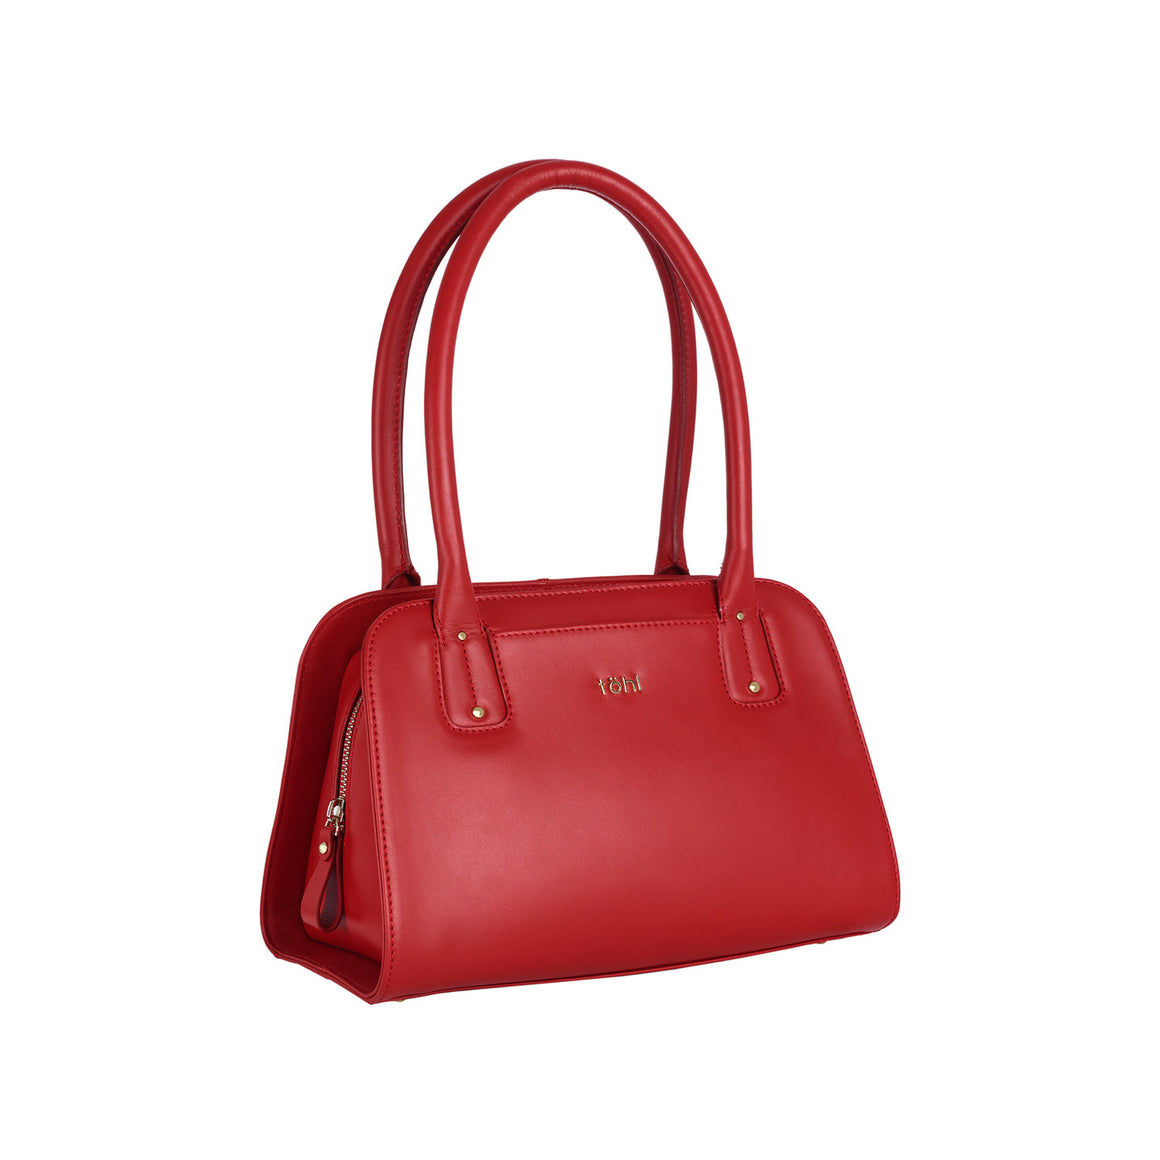 HH 0006 - TOHL PALOMA WOMEN'S SHOULDER BAG - SPICE RED